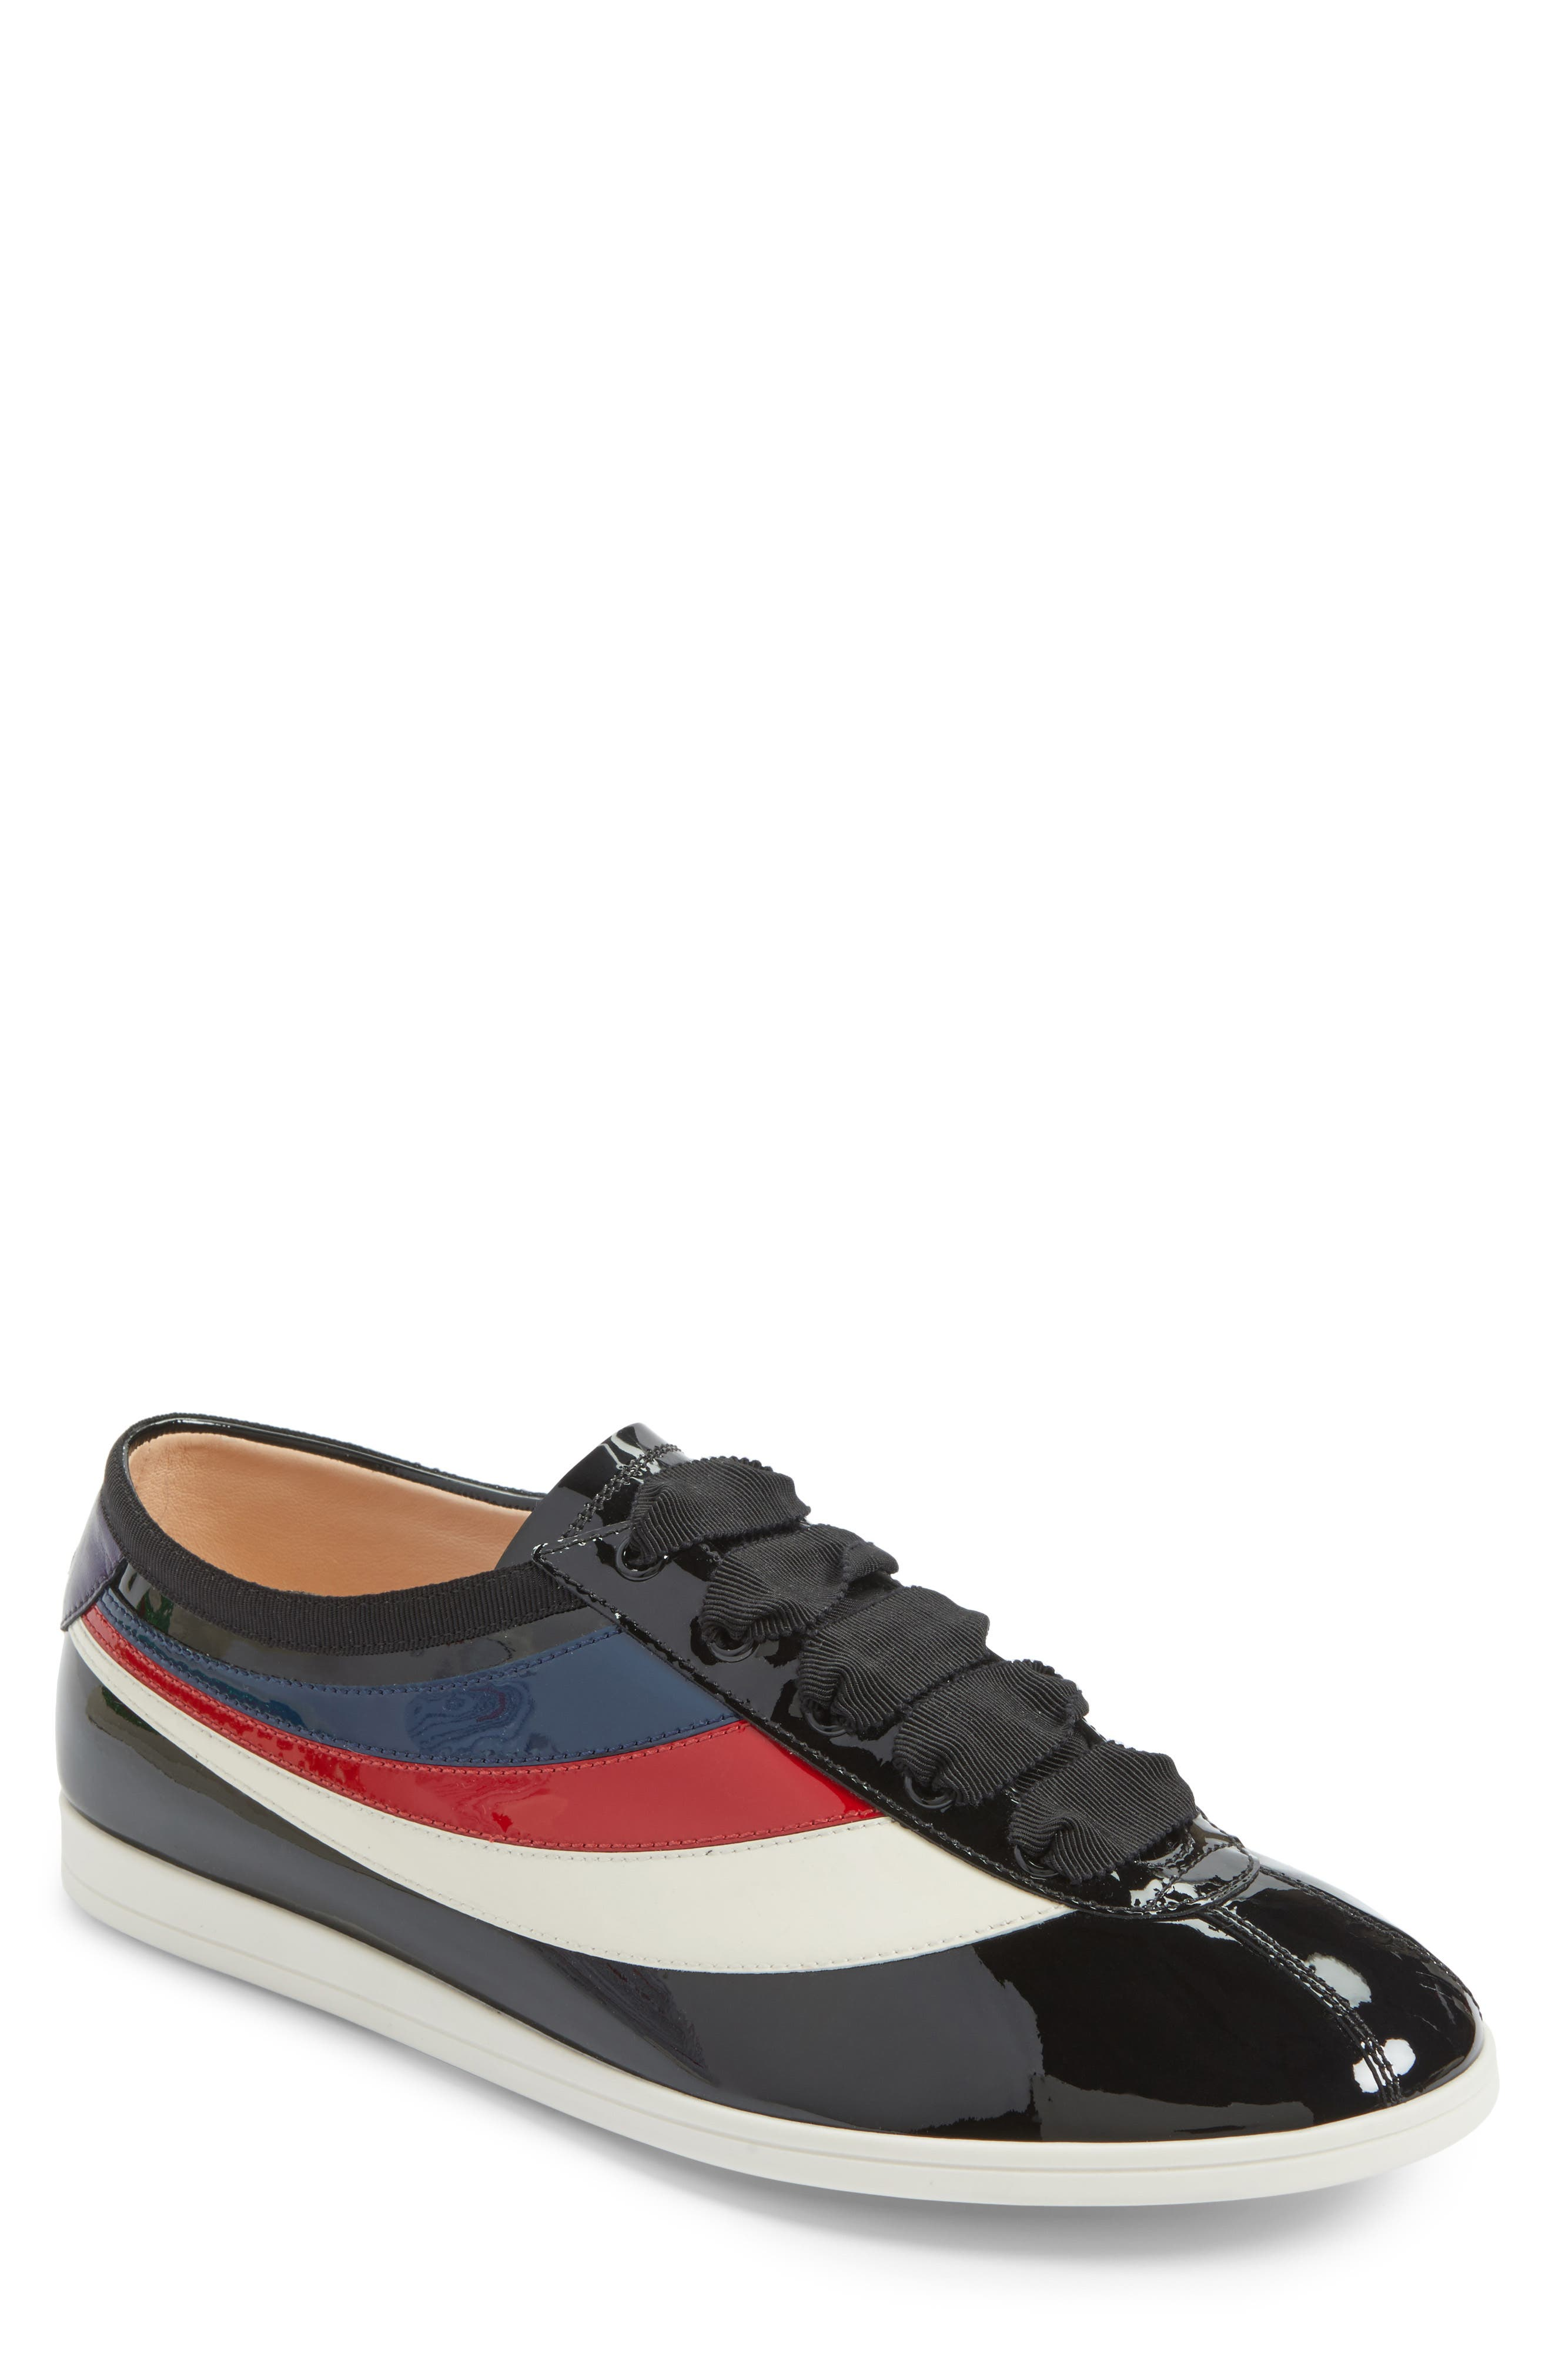 Falacer Sneaker,                         Main,                         color, Black